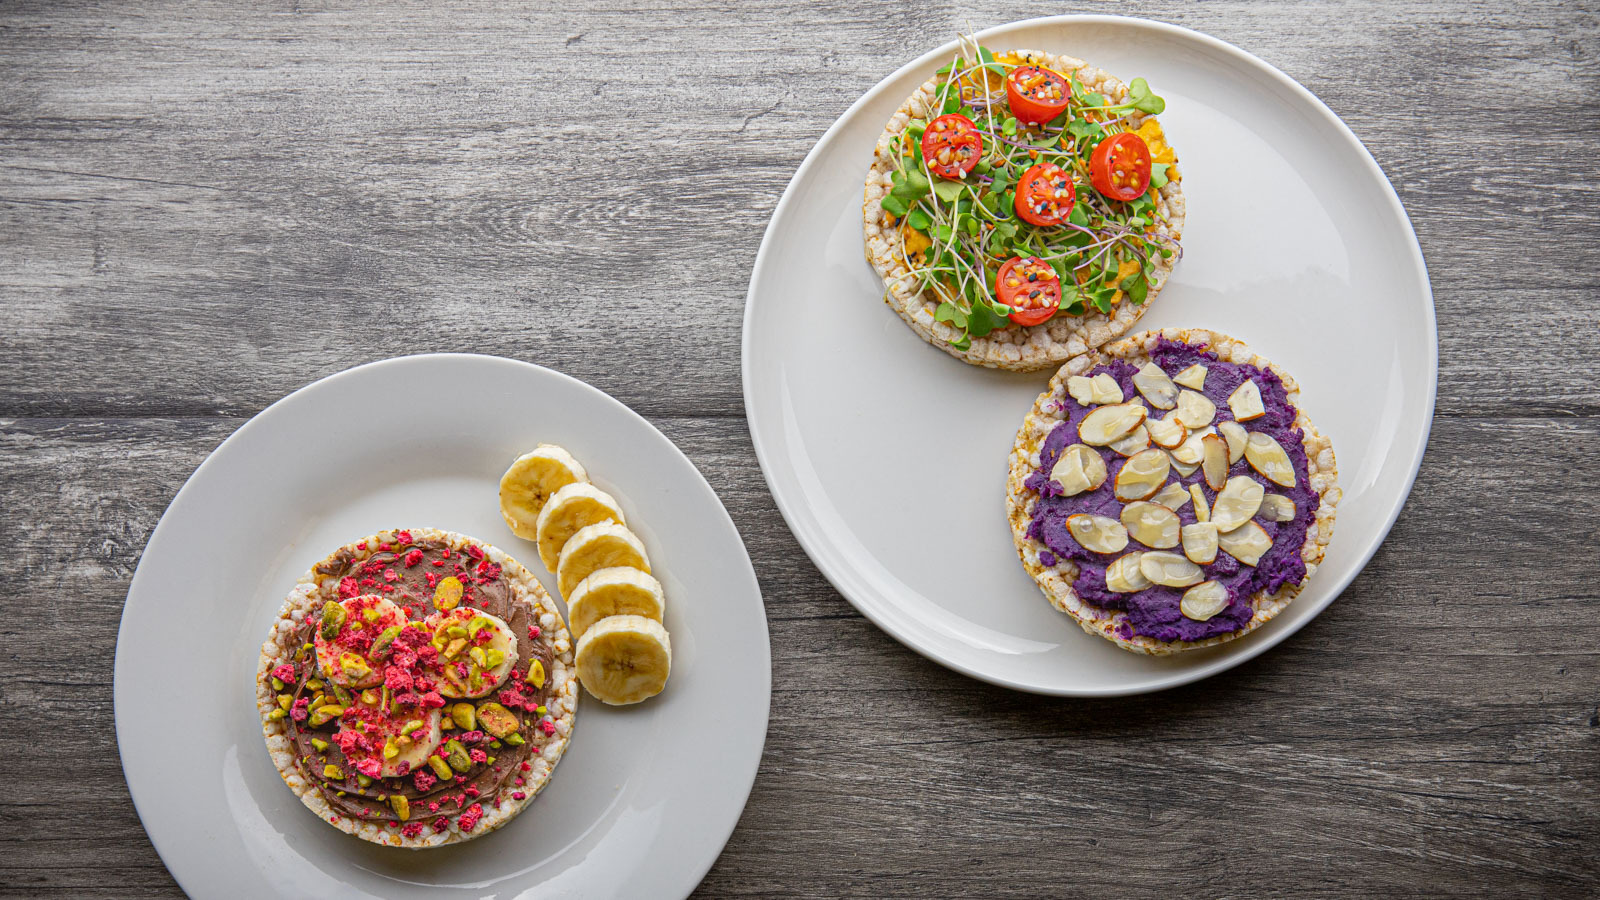 Rice cakes with various toppings on plates